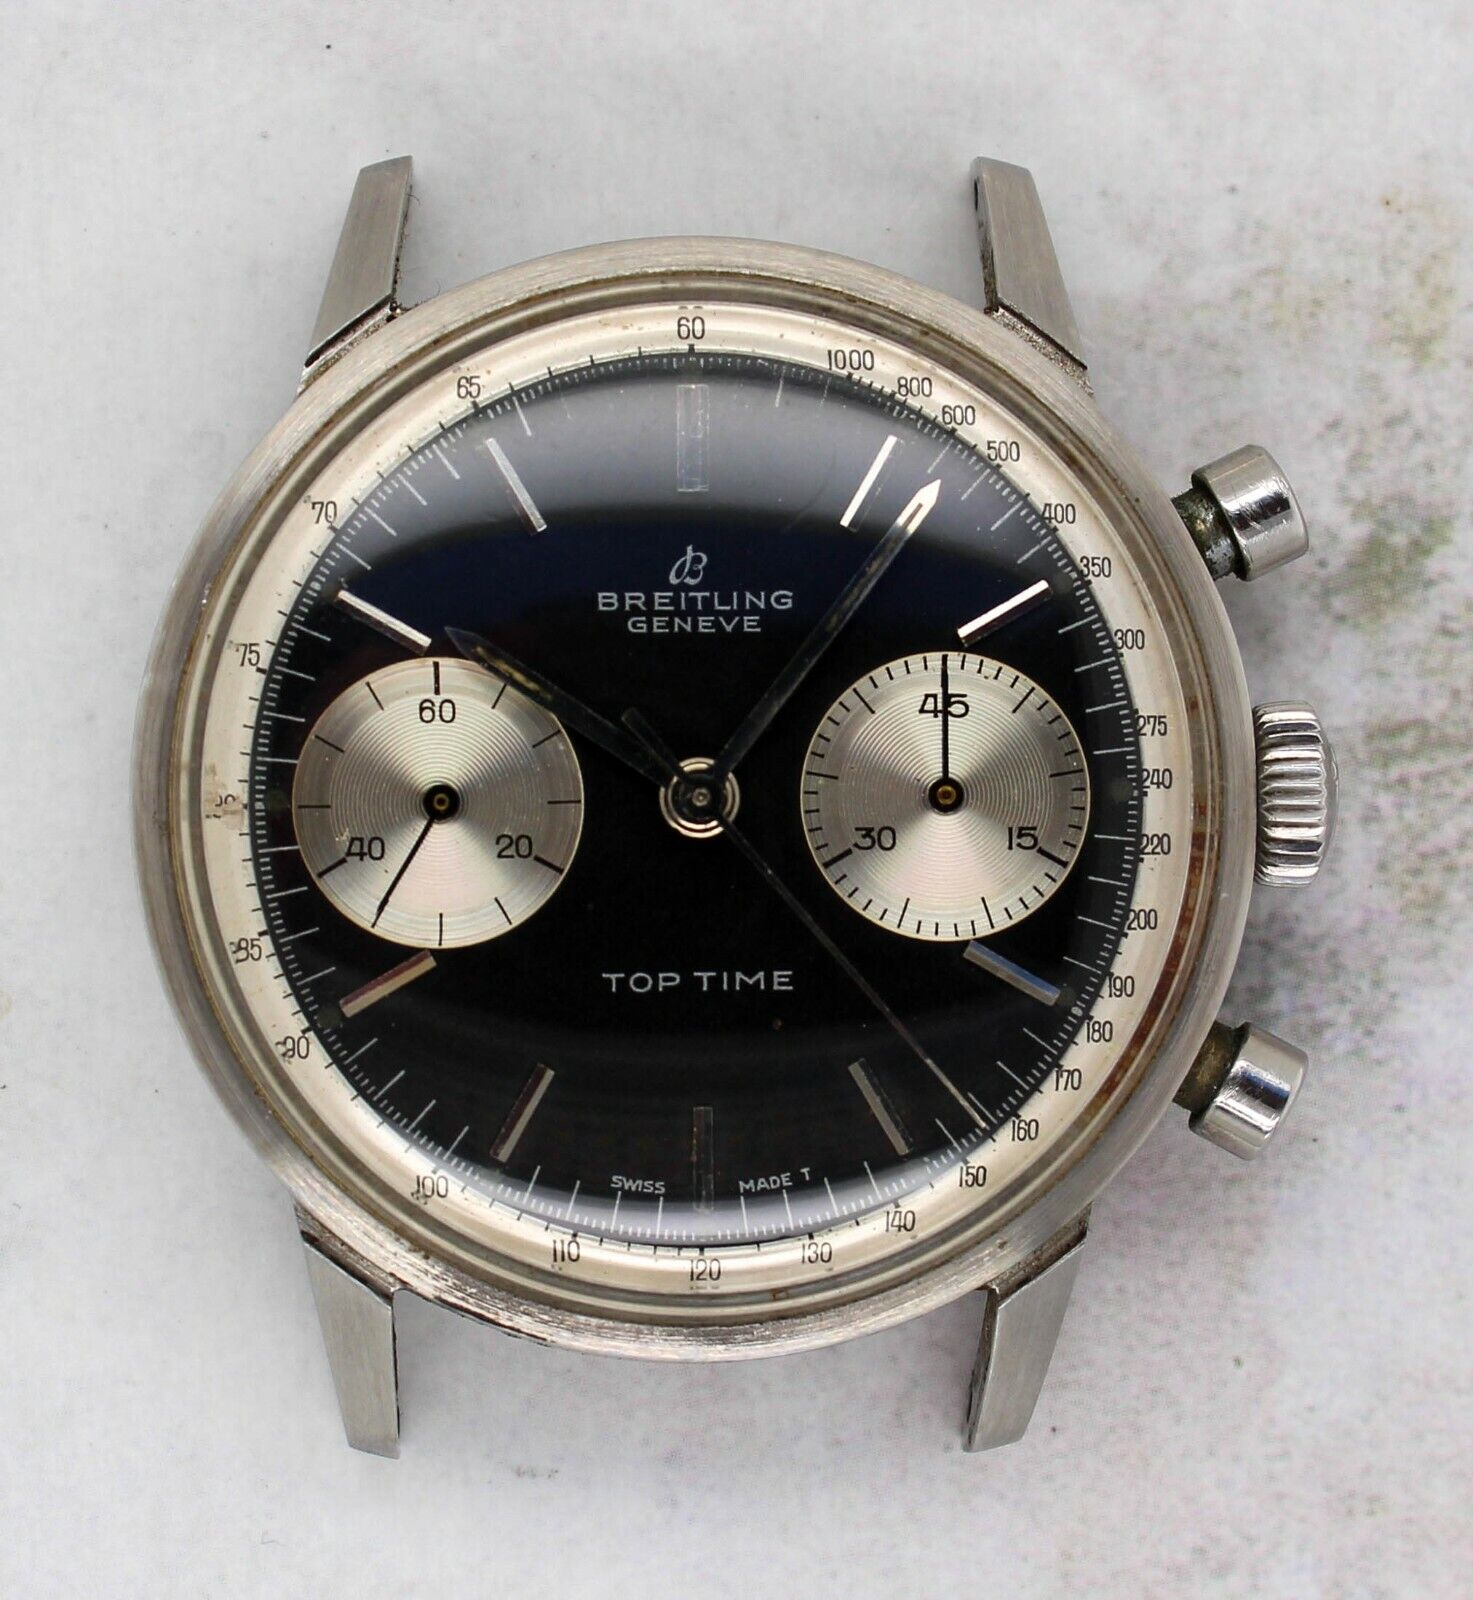 Vintage Breitling Top Time Ref. 2002 Steel Chronograph Wristwatch Valjoux 7730 - watch picture 1